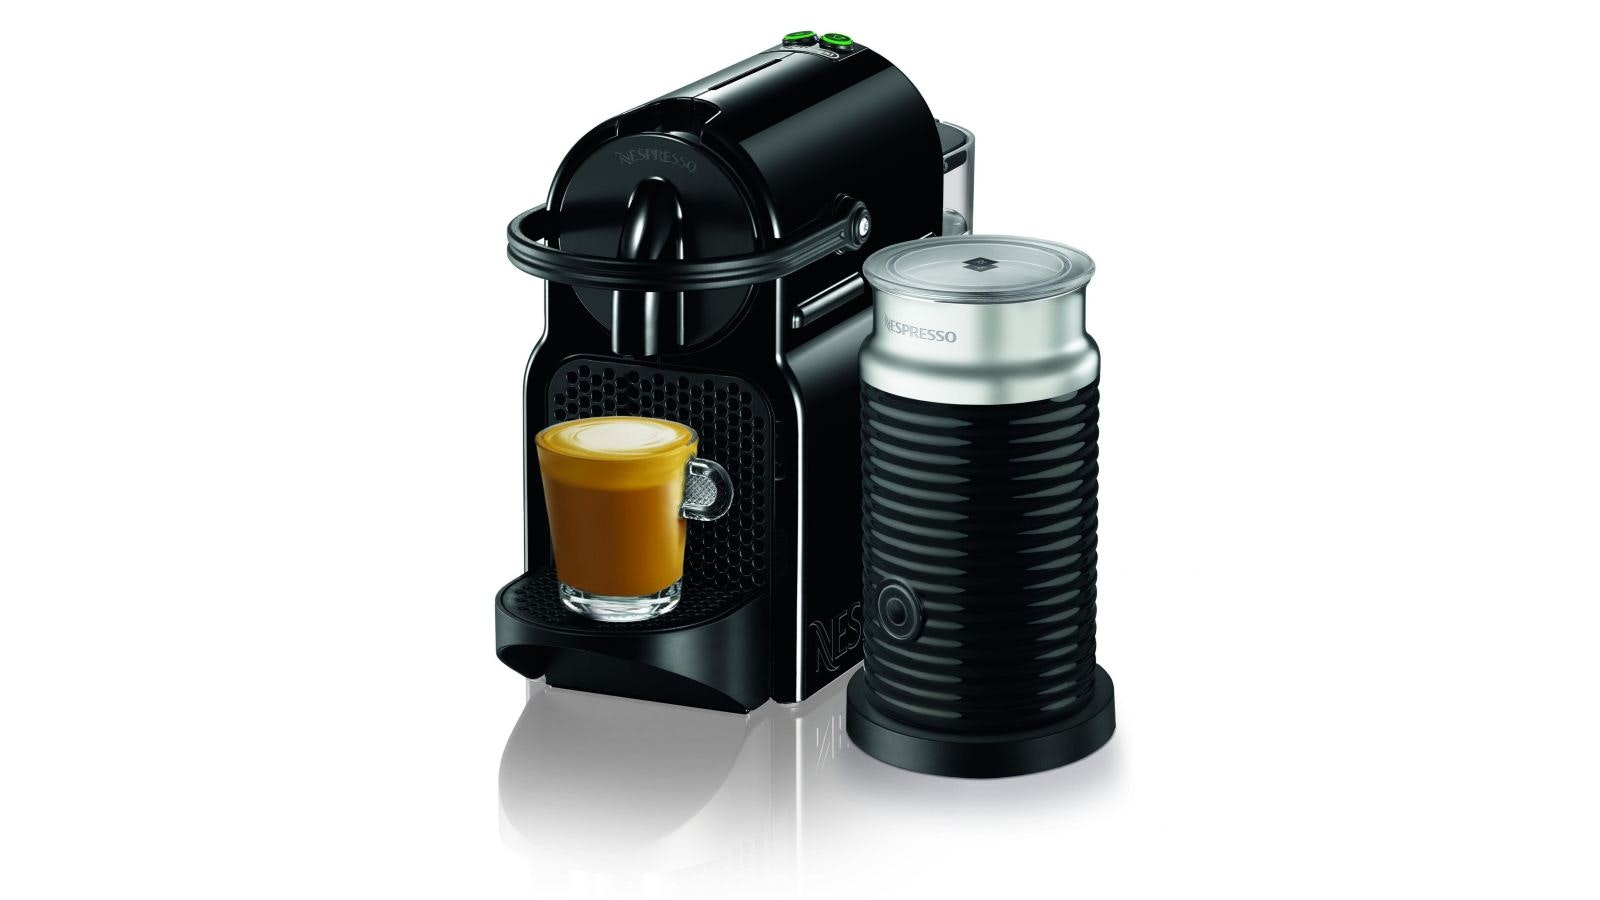 DeLonghi Nespresso Inissia Coffee Machine - Black